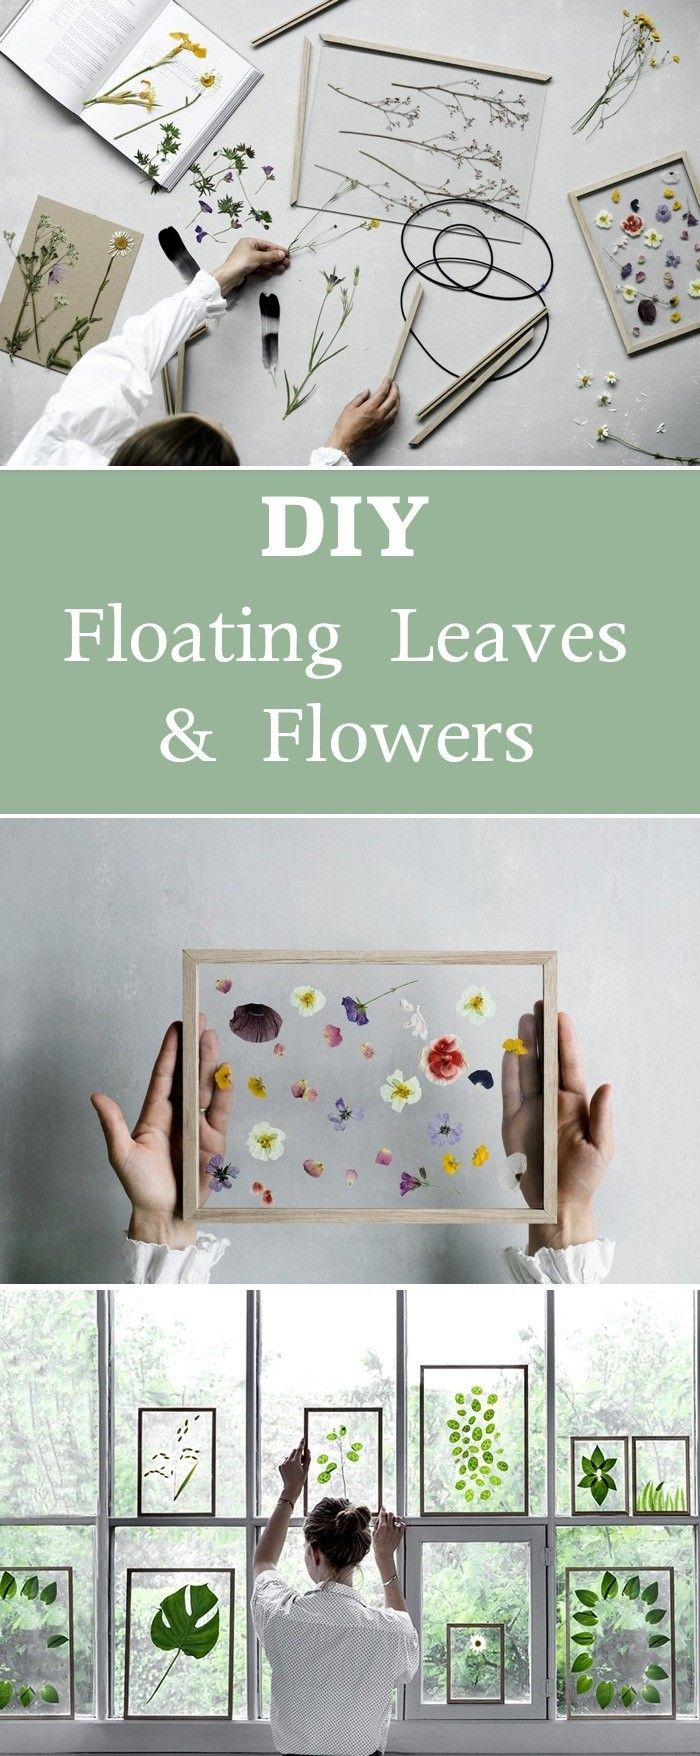 DIY Floating Leaves and Flowers